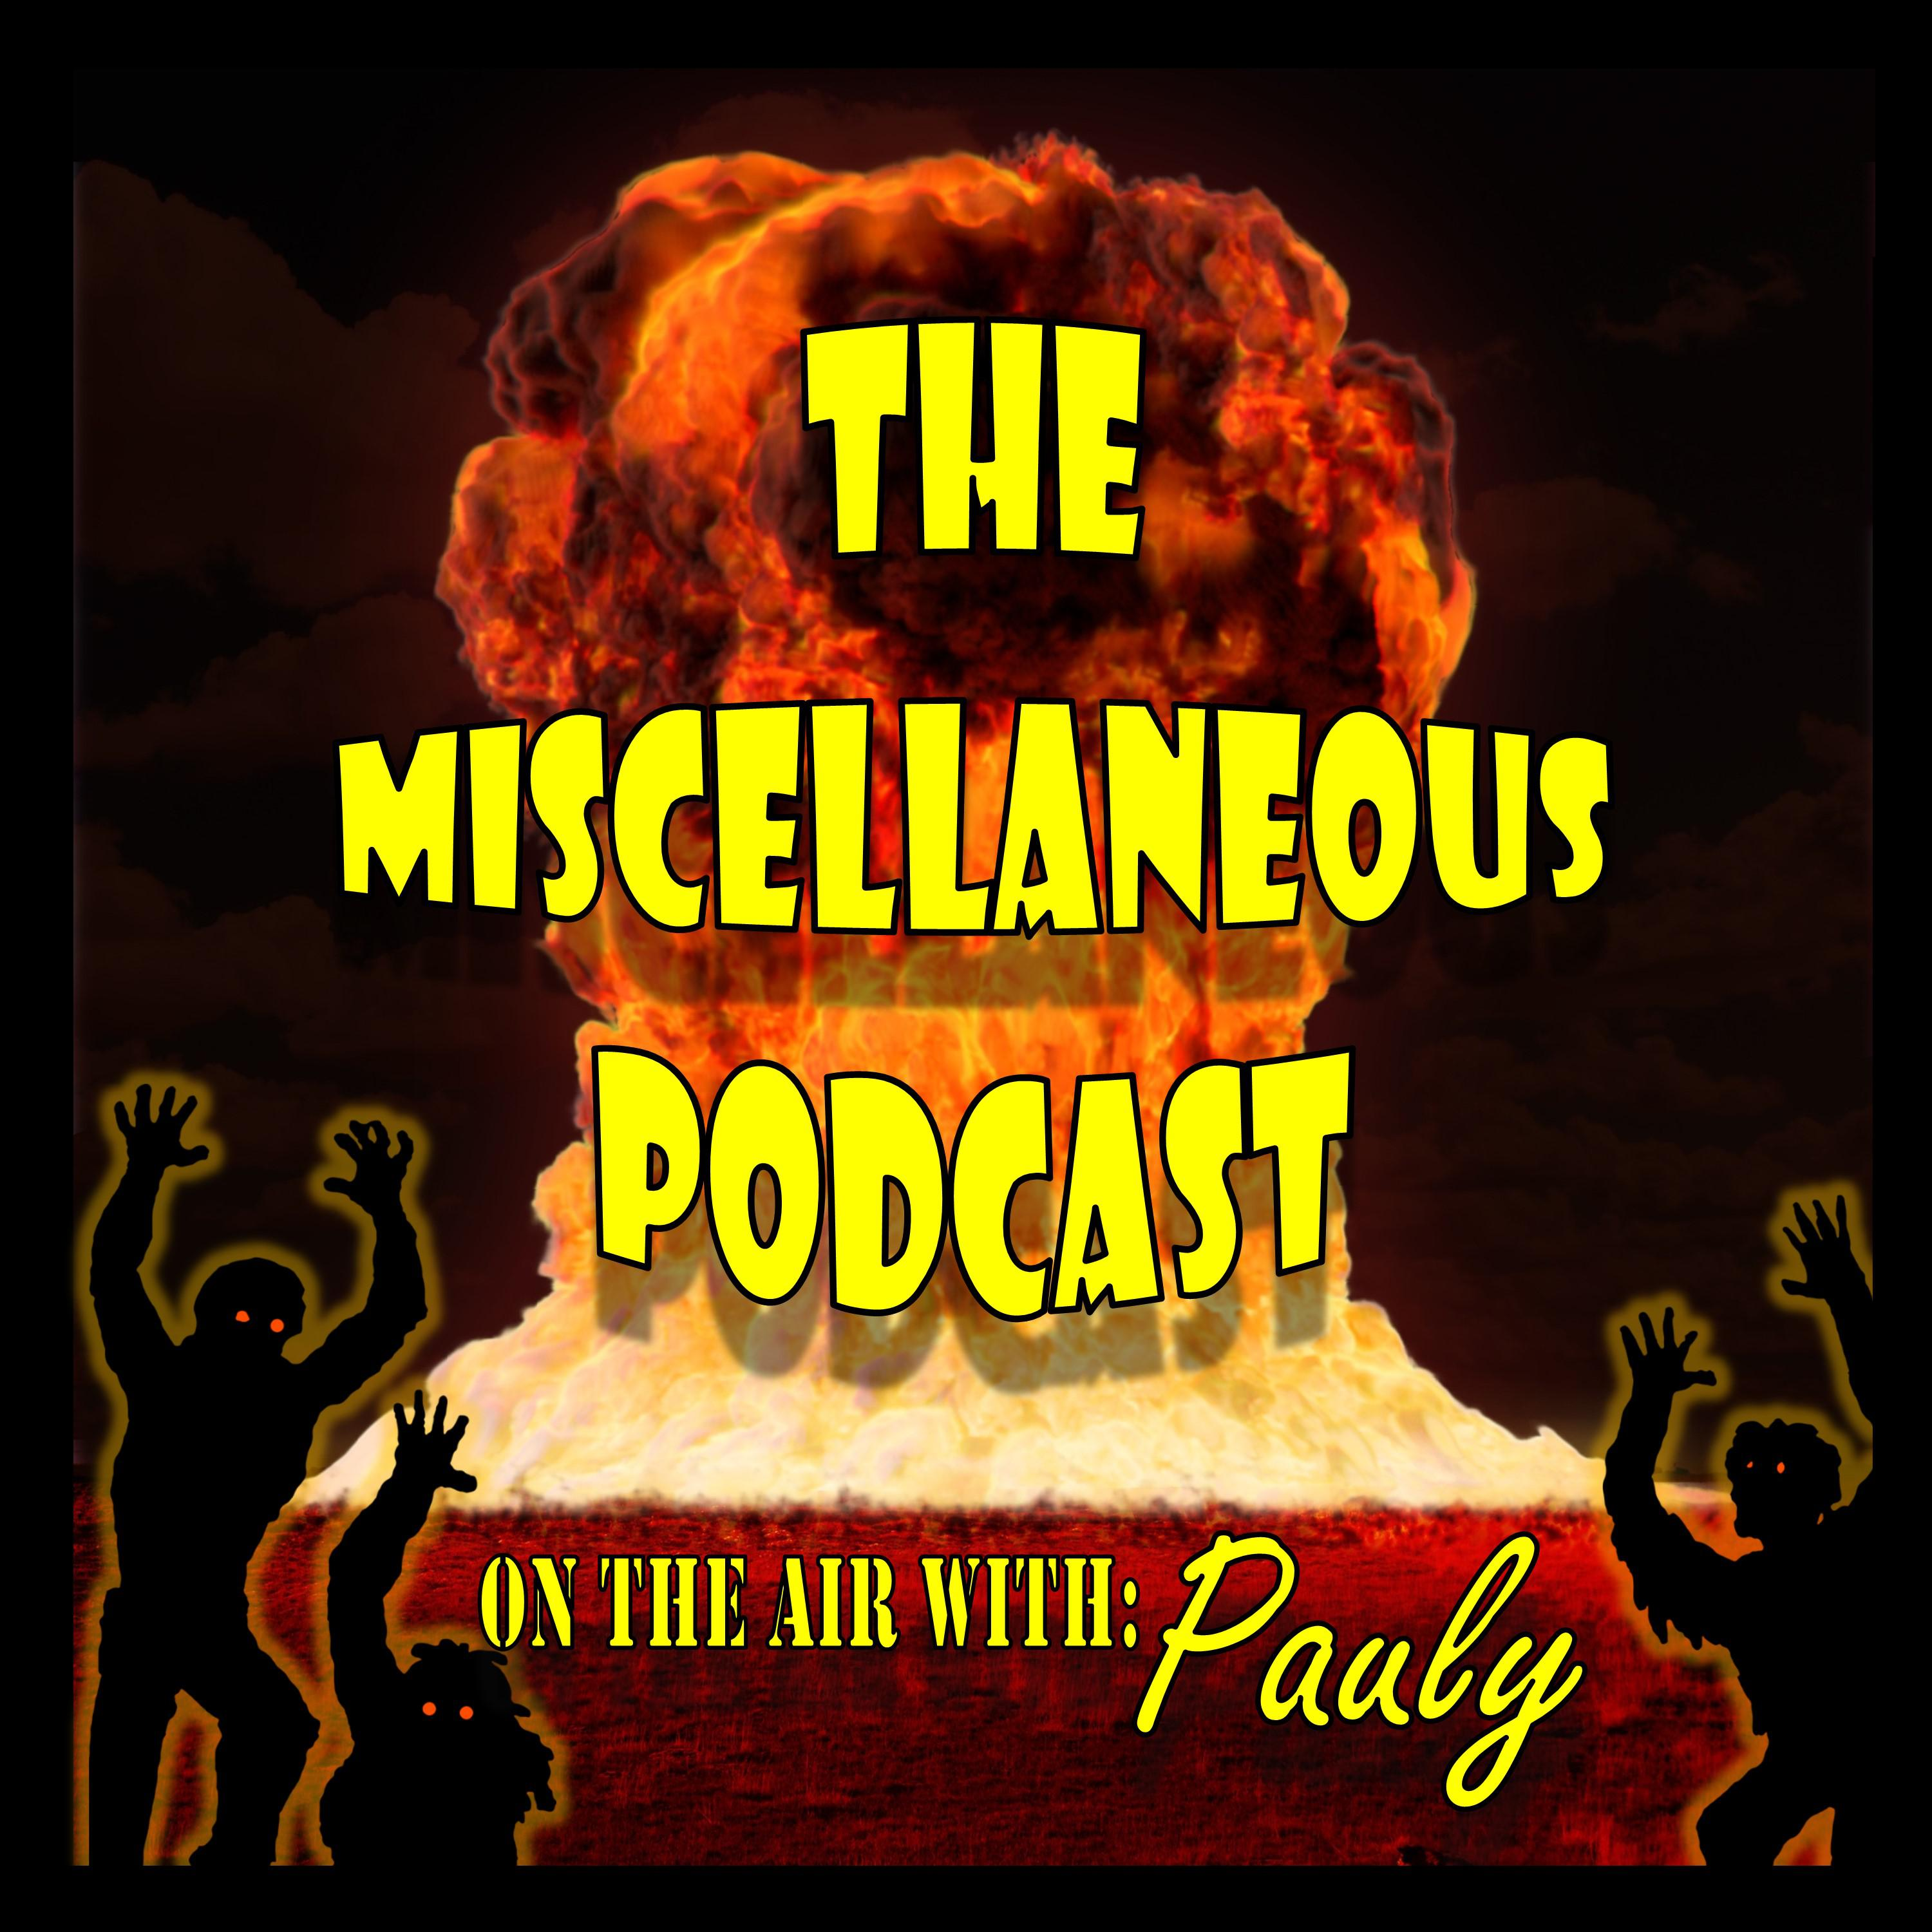 The Miscellaneous Podcast Logo